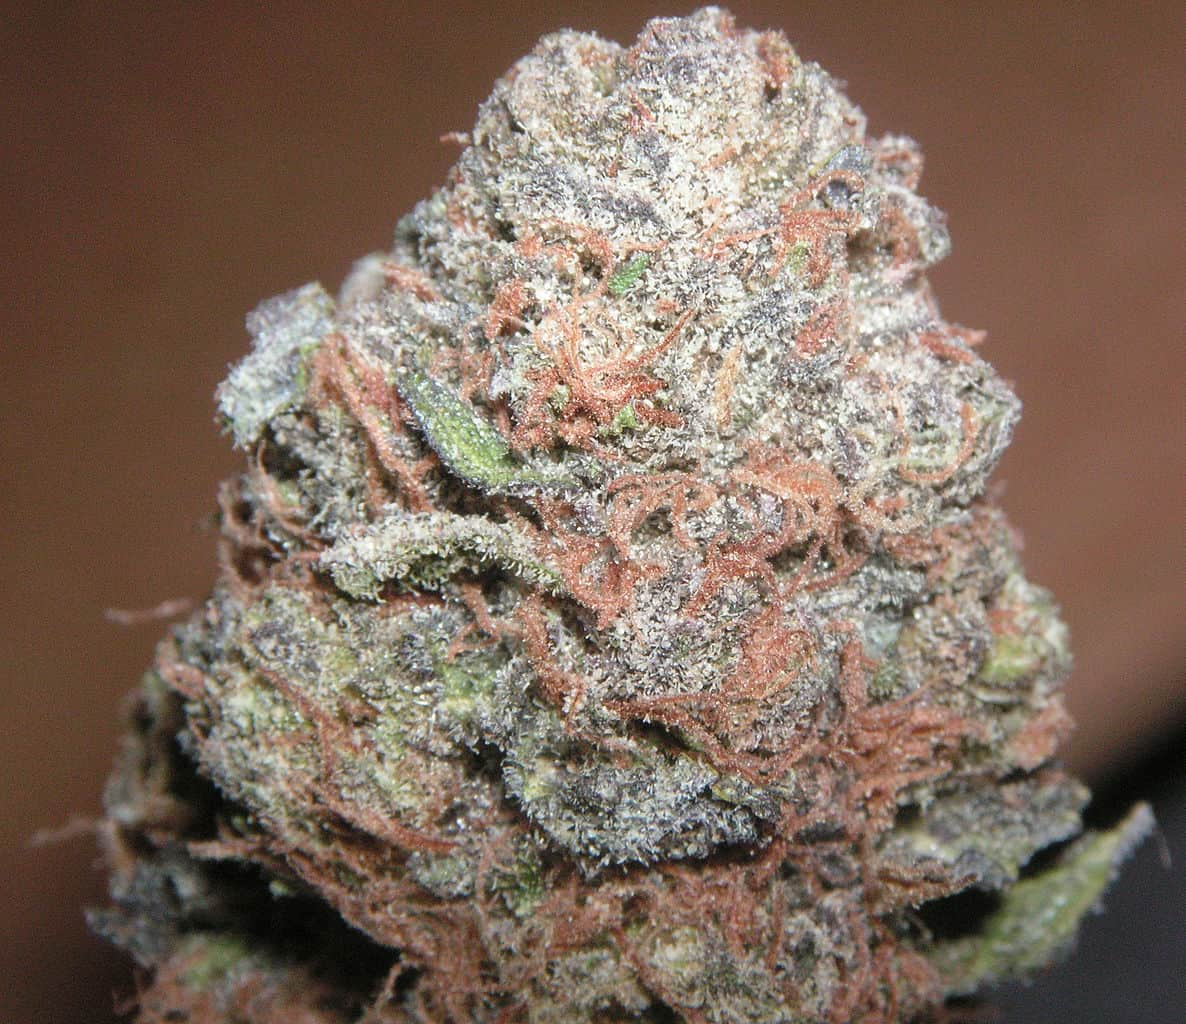 Purple Kush Bud Covered in Chrystals